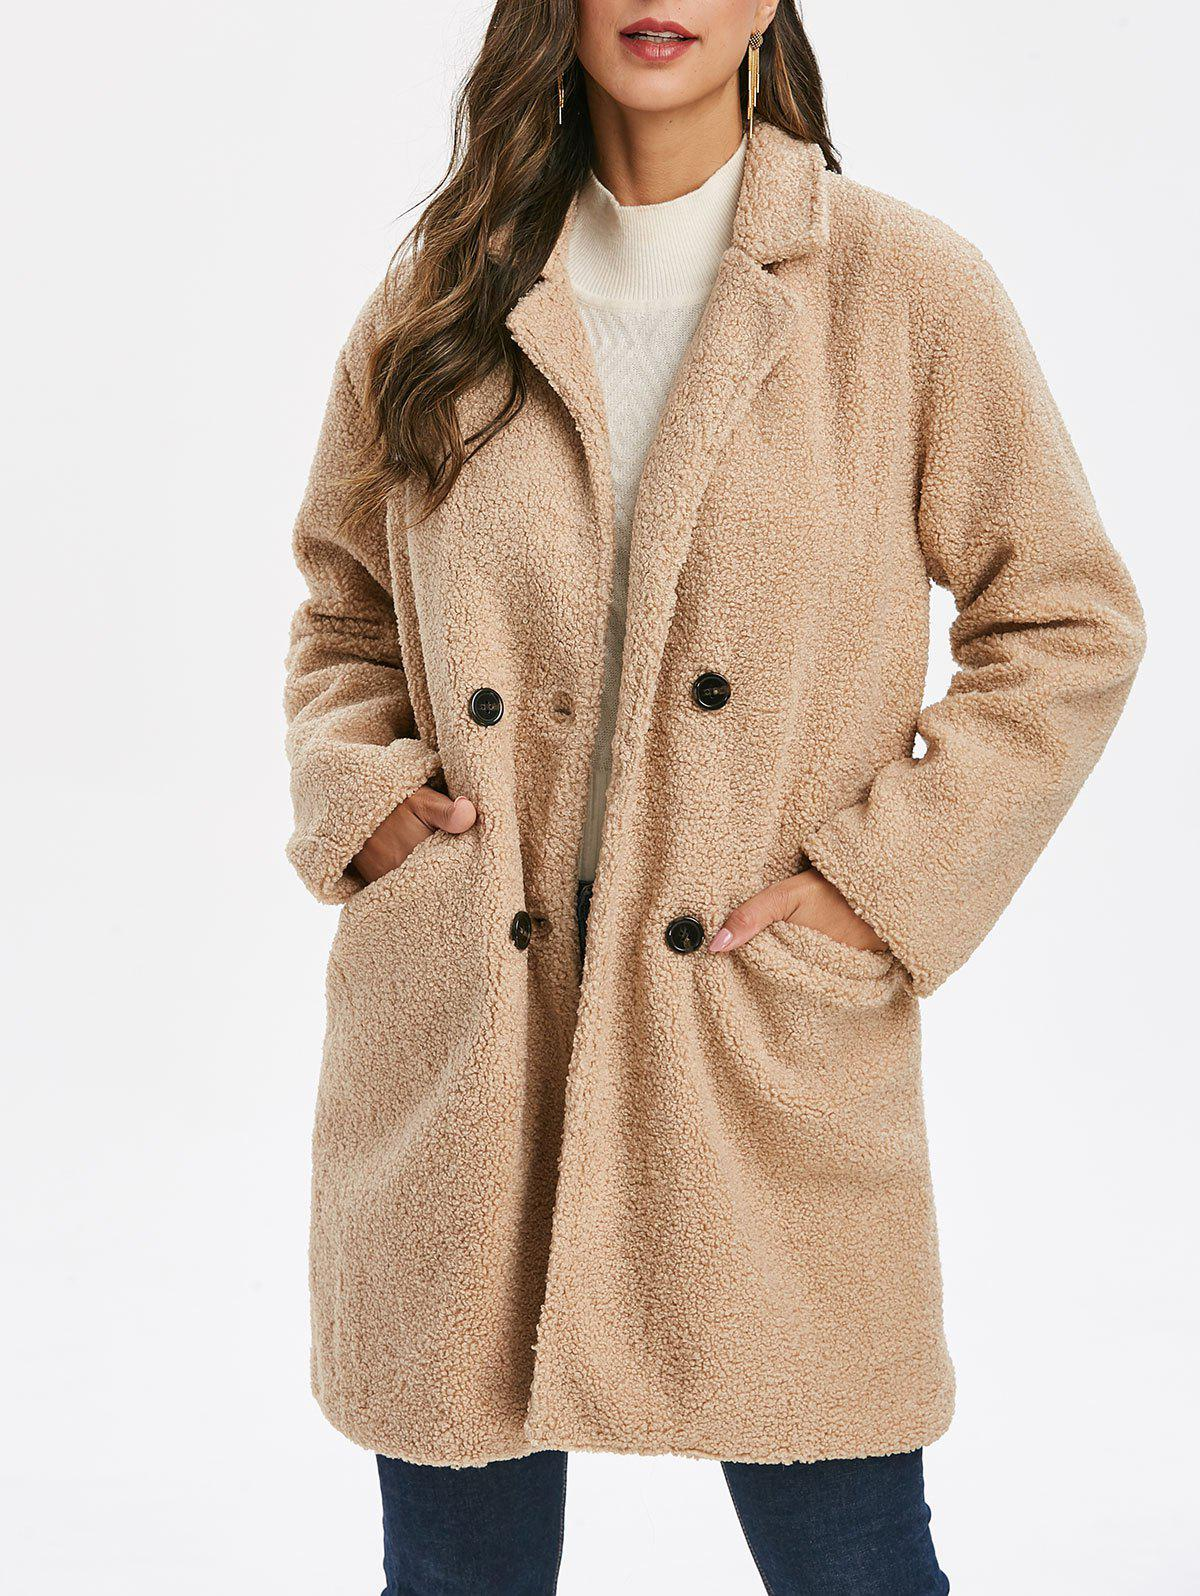 Double Breasted Solid Teddy Coat - CAMEL BROWN XL